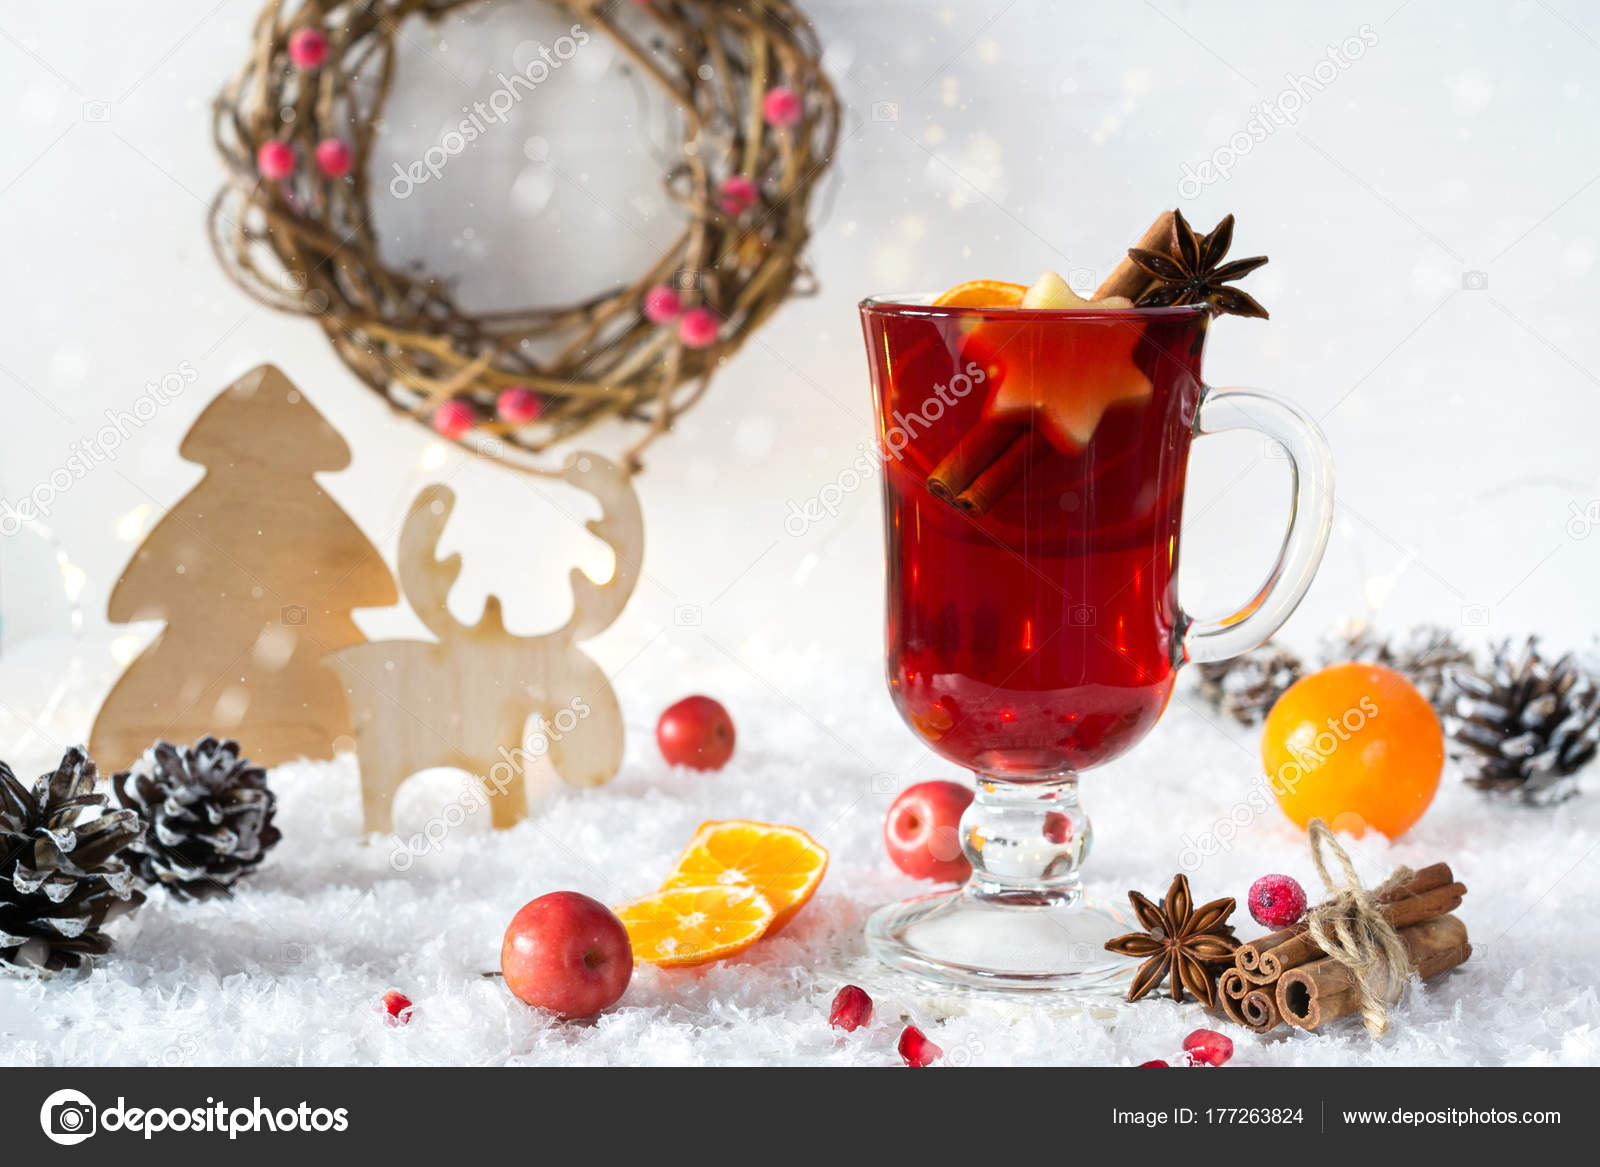 wooden vintage rustic christmas decoration hot mulled spiced red wine stock photo - Vintage Rustic Christmas Decorations